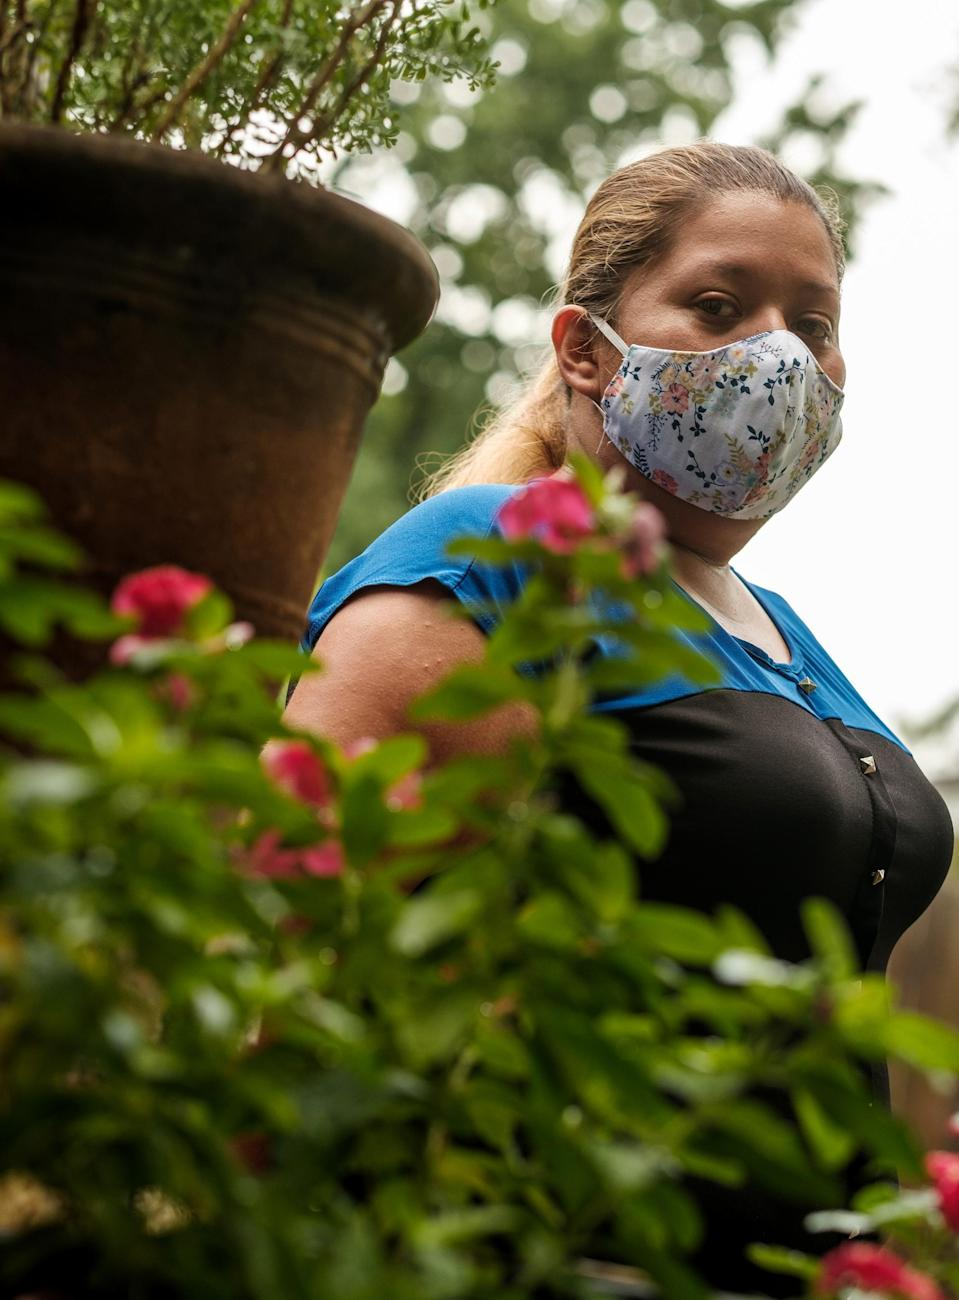 Image: Karen Salazar outside of her mother's home in Houston on July 7, 2020. (Fred Agho / for NBC News)